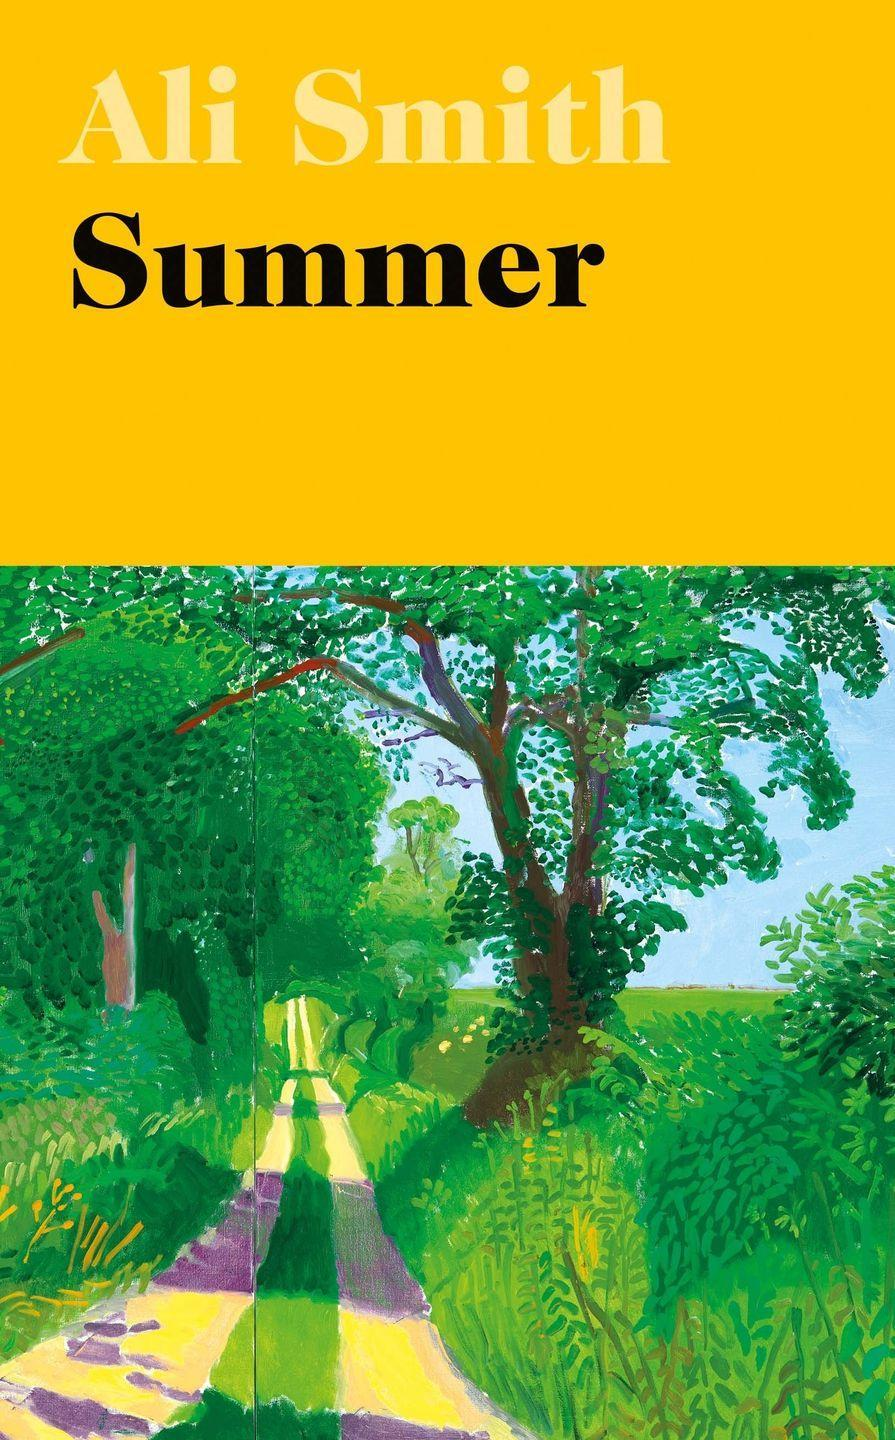 """<p>The conclusion to Ali Smith's stunning quarter, Summer is a story of intertwining lives and families and strangers with more connections than they think.</p><p>""""Summer by Ali Smith is such a witty, inventive, playful,<br>probing novel, which really captures our zeitgeist in so many different ways, while also being fabulously entertaining."""" -Bernardine Evaristo <br></p><p><strong>Read Bazaar's interview with Ali Smith in the <a href=""""https://magsdirect.co.uk/magazine/harpers-bazaar-uk-sep-20/"""" rel=""""nofollow noopener"""" target=""""_blank"""" data-ylk=""""slk:September 2020"""" class=""""link rapid-noclick-resp"""">September 2020 </a>issue. </strong></p><p><a class=""""link rapid-noclick-resp"""" href=""""https://www.amazon.co.uk/Summer-Seasonal-Quartet-Ali-Smith/dp/0241207061/ref=sr_1_1?adgrpid=73451982212&dchild=1&gclid=Cj0KCQiAnKeCBhDPARIsAFDTLTK5e-4Zn_53lYbqSZvA85ddAl7tVLBwp6nmOze0QWX6MTHh3BmdktIaAq_QEALw_wcB&hvadid=338403813516&hvdev=c&hvlocphy=9073583&hvnetw=g&hvqmt=e&hvrand=10518284673281230642&hvtargid=kwd-668143372275&hydadcr=17142_1746176&keywords=summer+ali+smith&qid=1615458488&sr=8-1&tag=hearstuk-yahoo-21&ascsubtag=%5Bartid%7C1927.g.35797924%5Bsrc%7Cyahoo-uk"""" rel=""""nofollow noopener"""" target=""""_blank"""" data-ylk=""""slk:SHOP NOW"""">SHOP NOW</a></p>"""